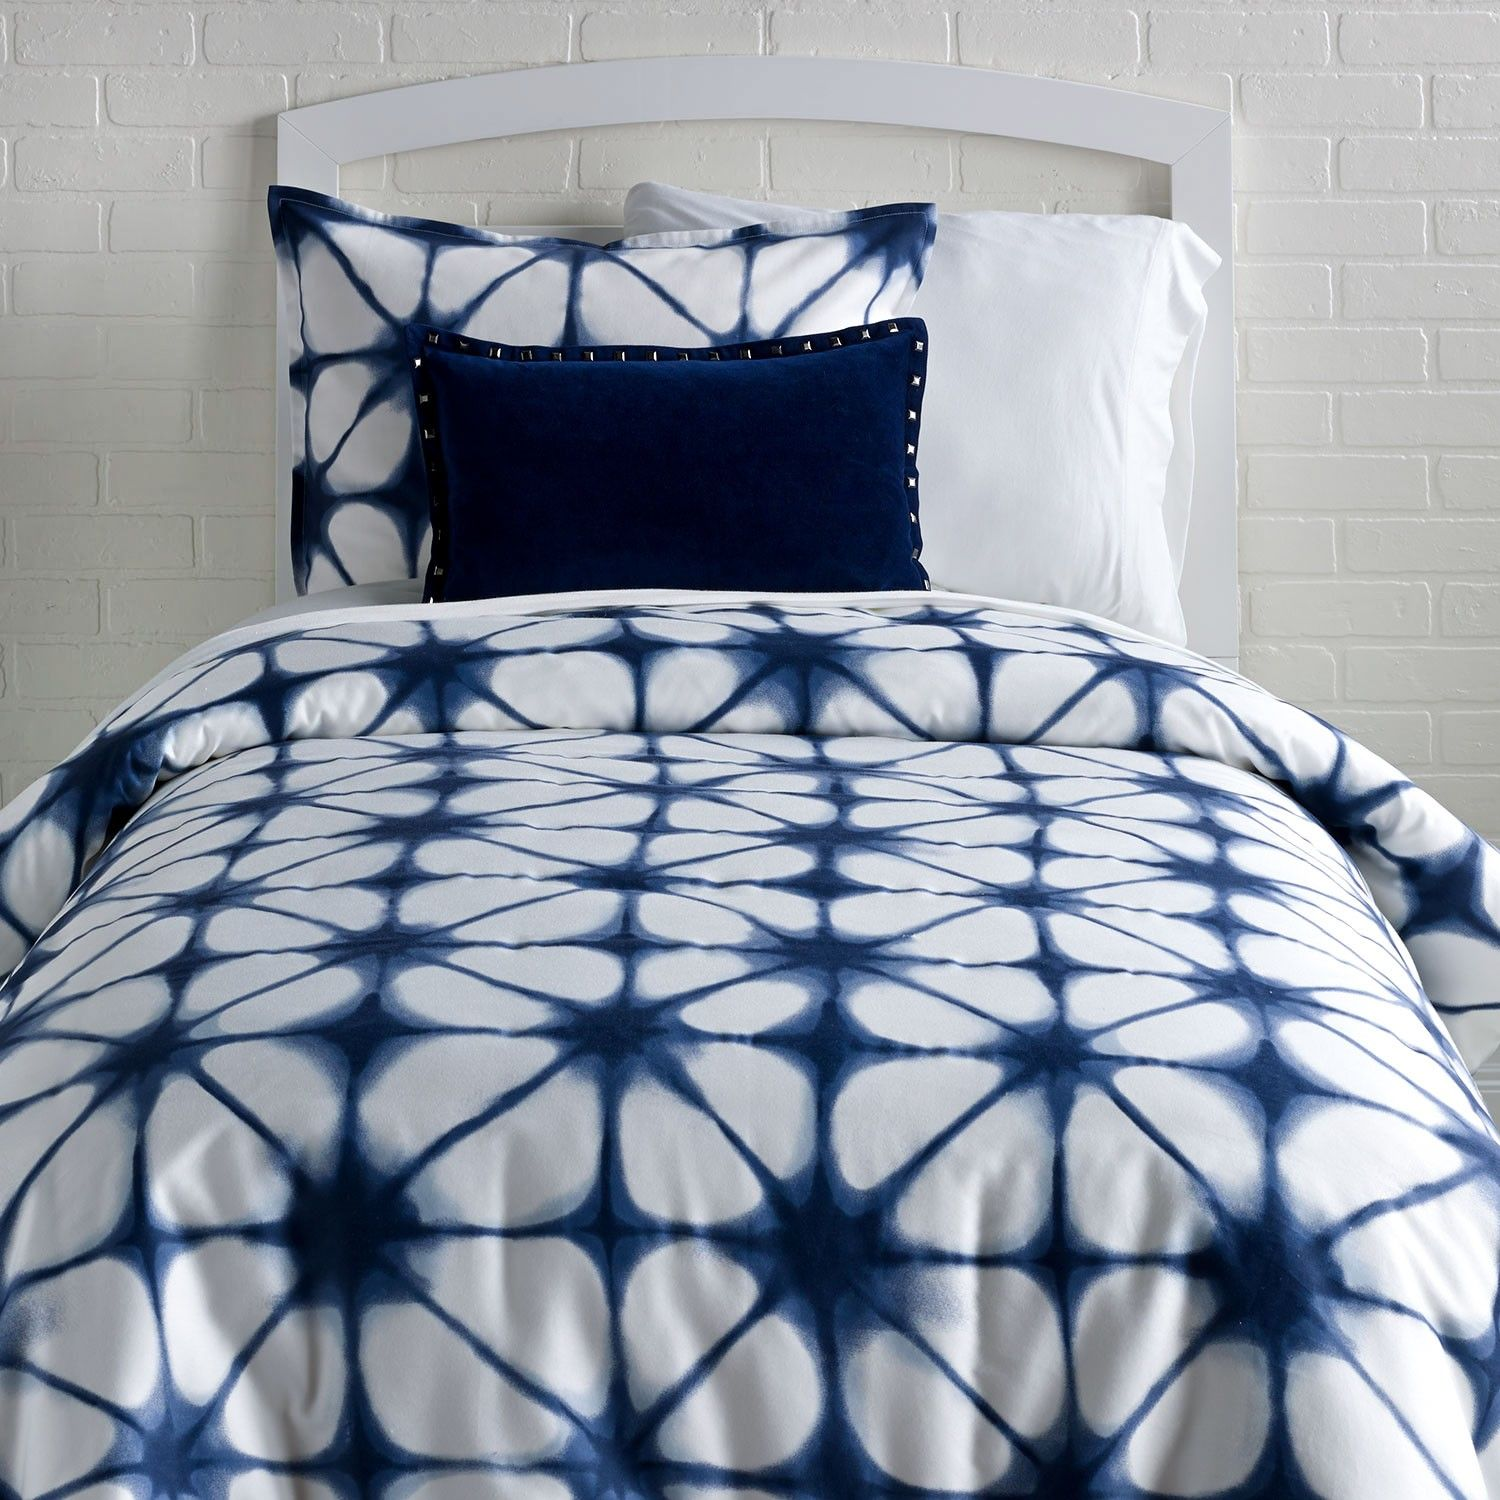 be2a943ad149 Which Bed Sheets Are The Best Refferal  6718681145. Indigo Tie Dye Duvet  Cover and Sham Set